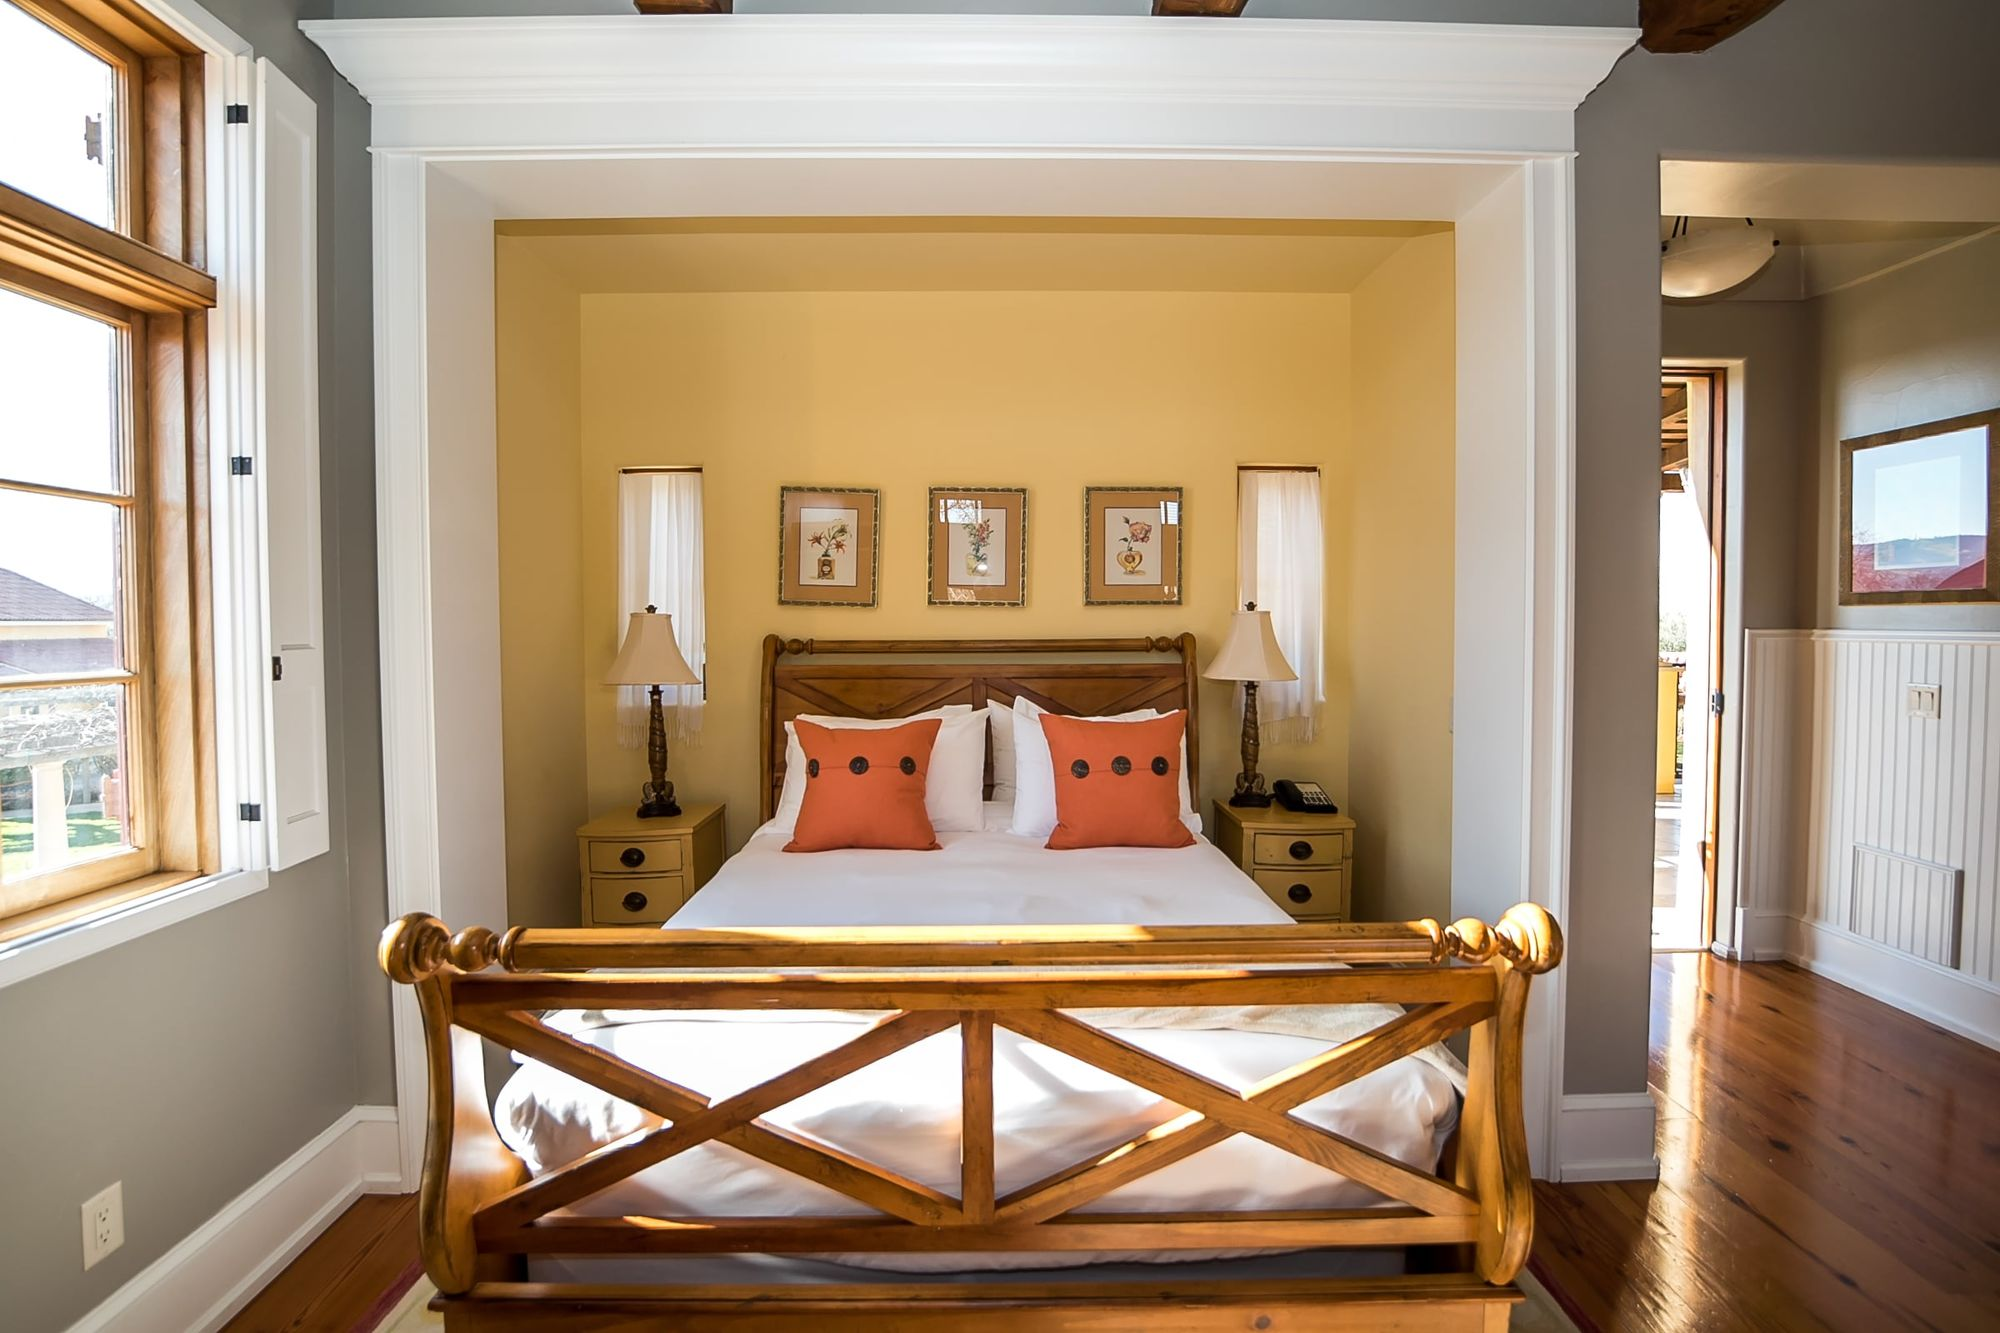 Sleigh bed made up with white sheets and orange accent pillows